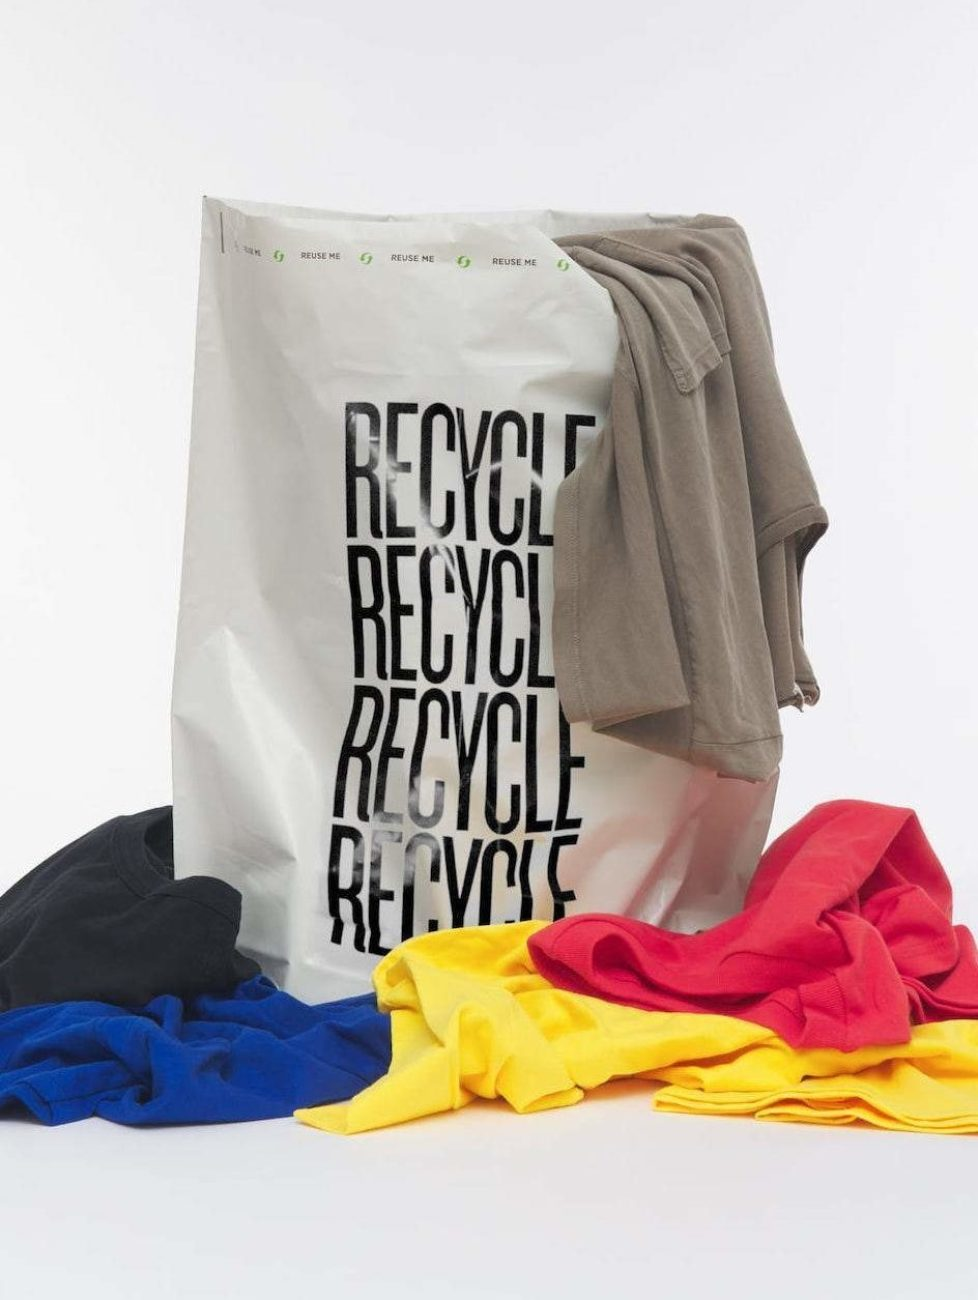 Keeping clothing out of landfills